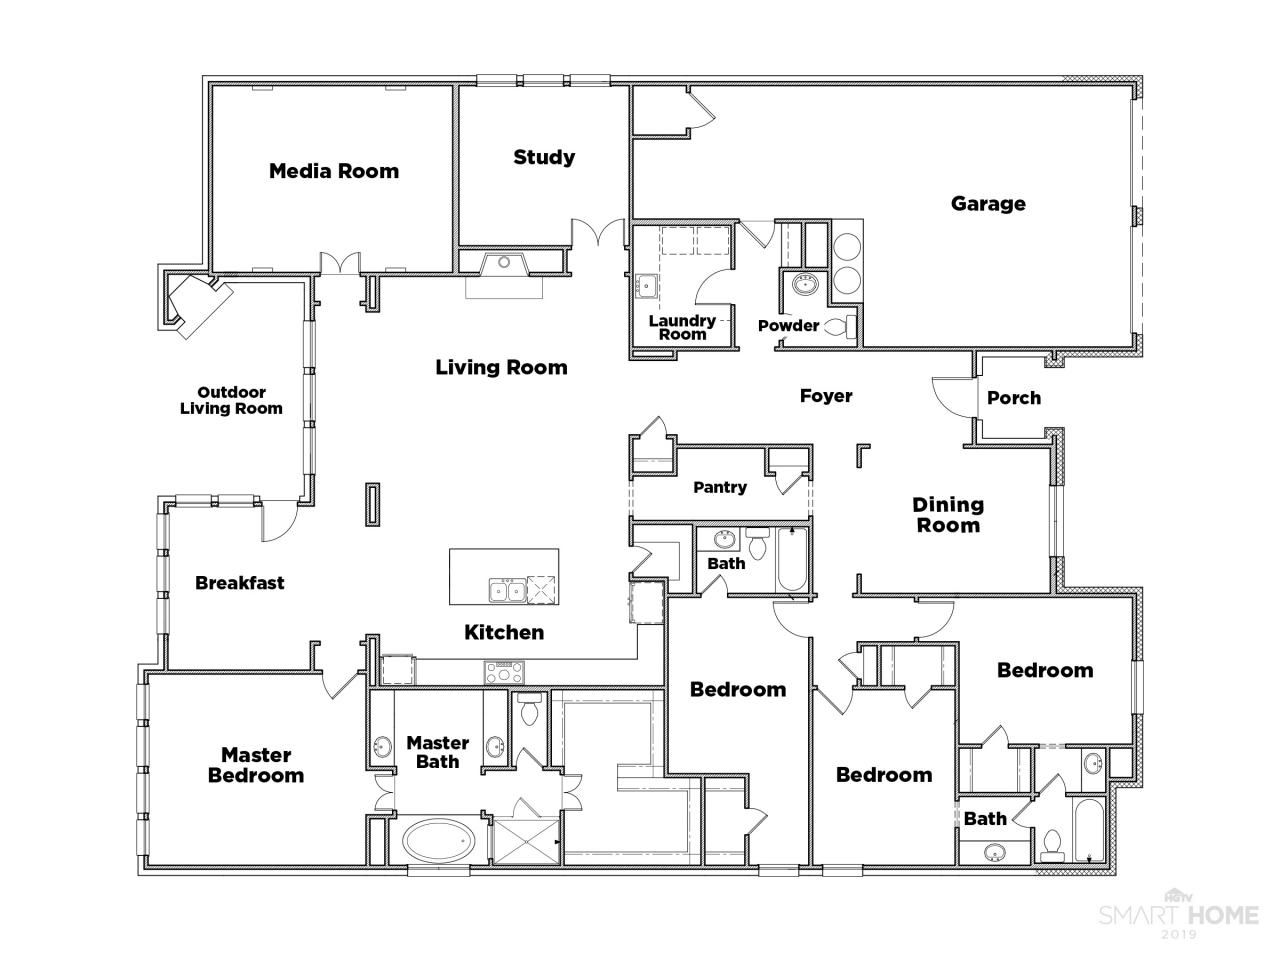 Discover The Floor Plan For Hgtv Smart Home